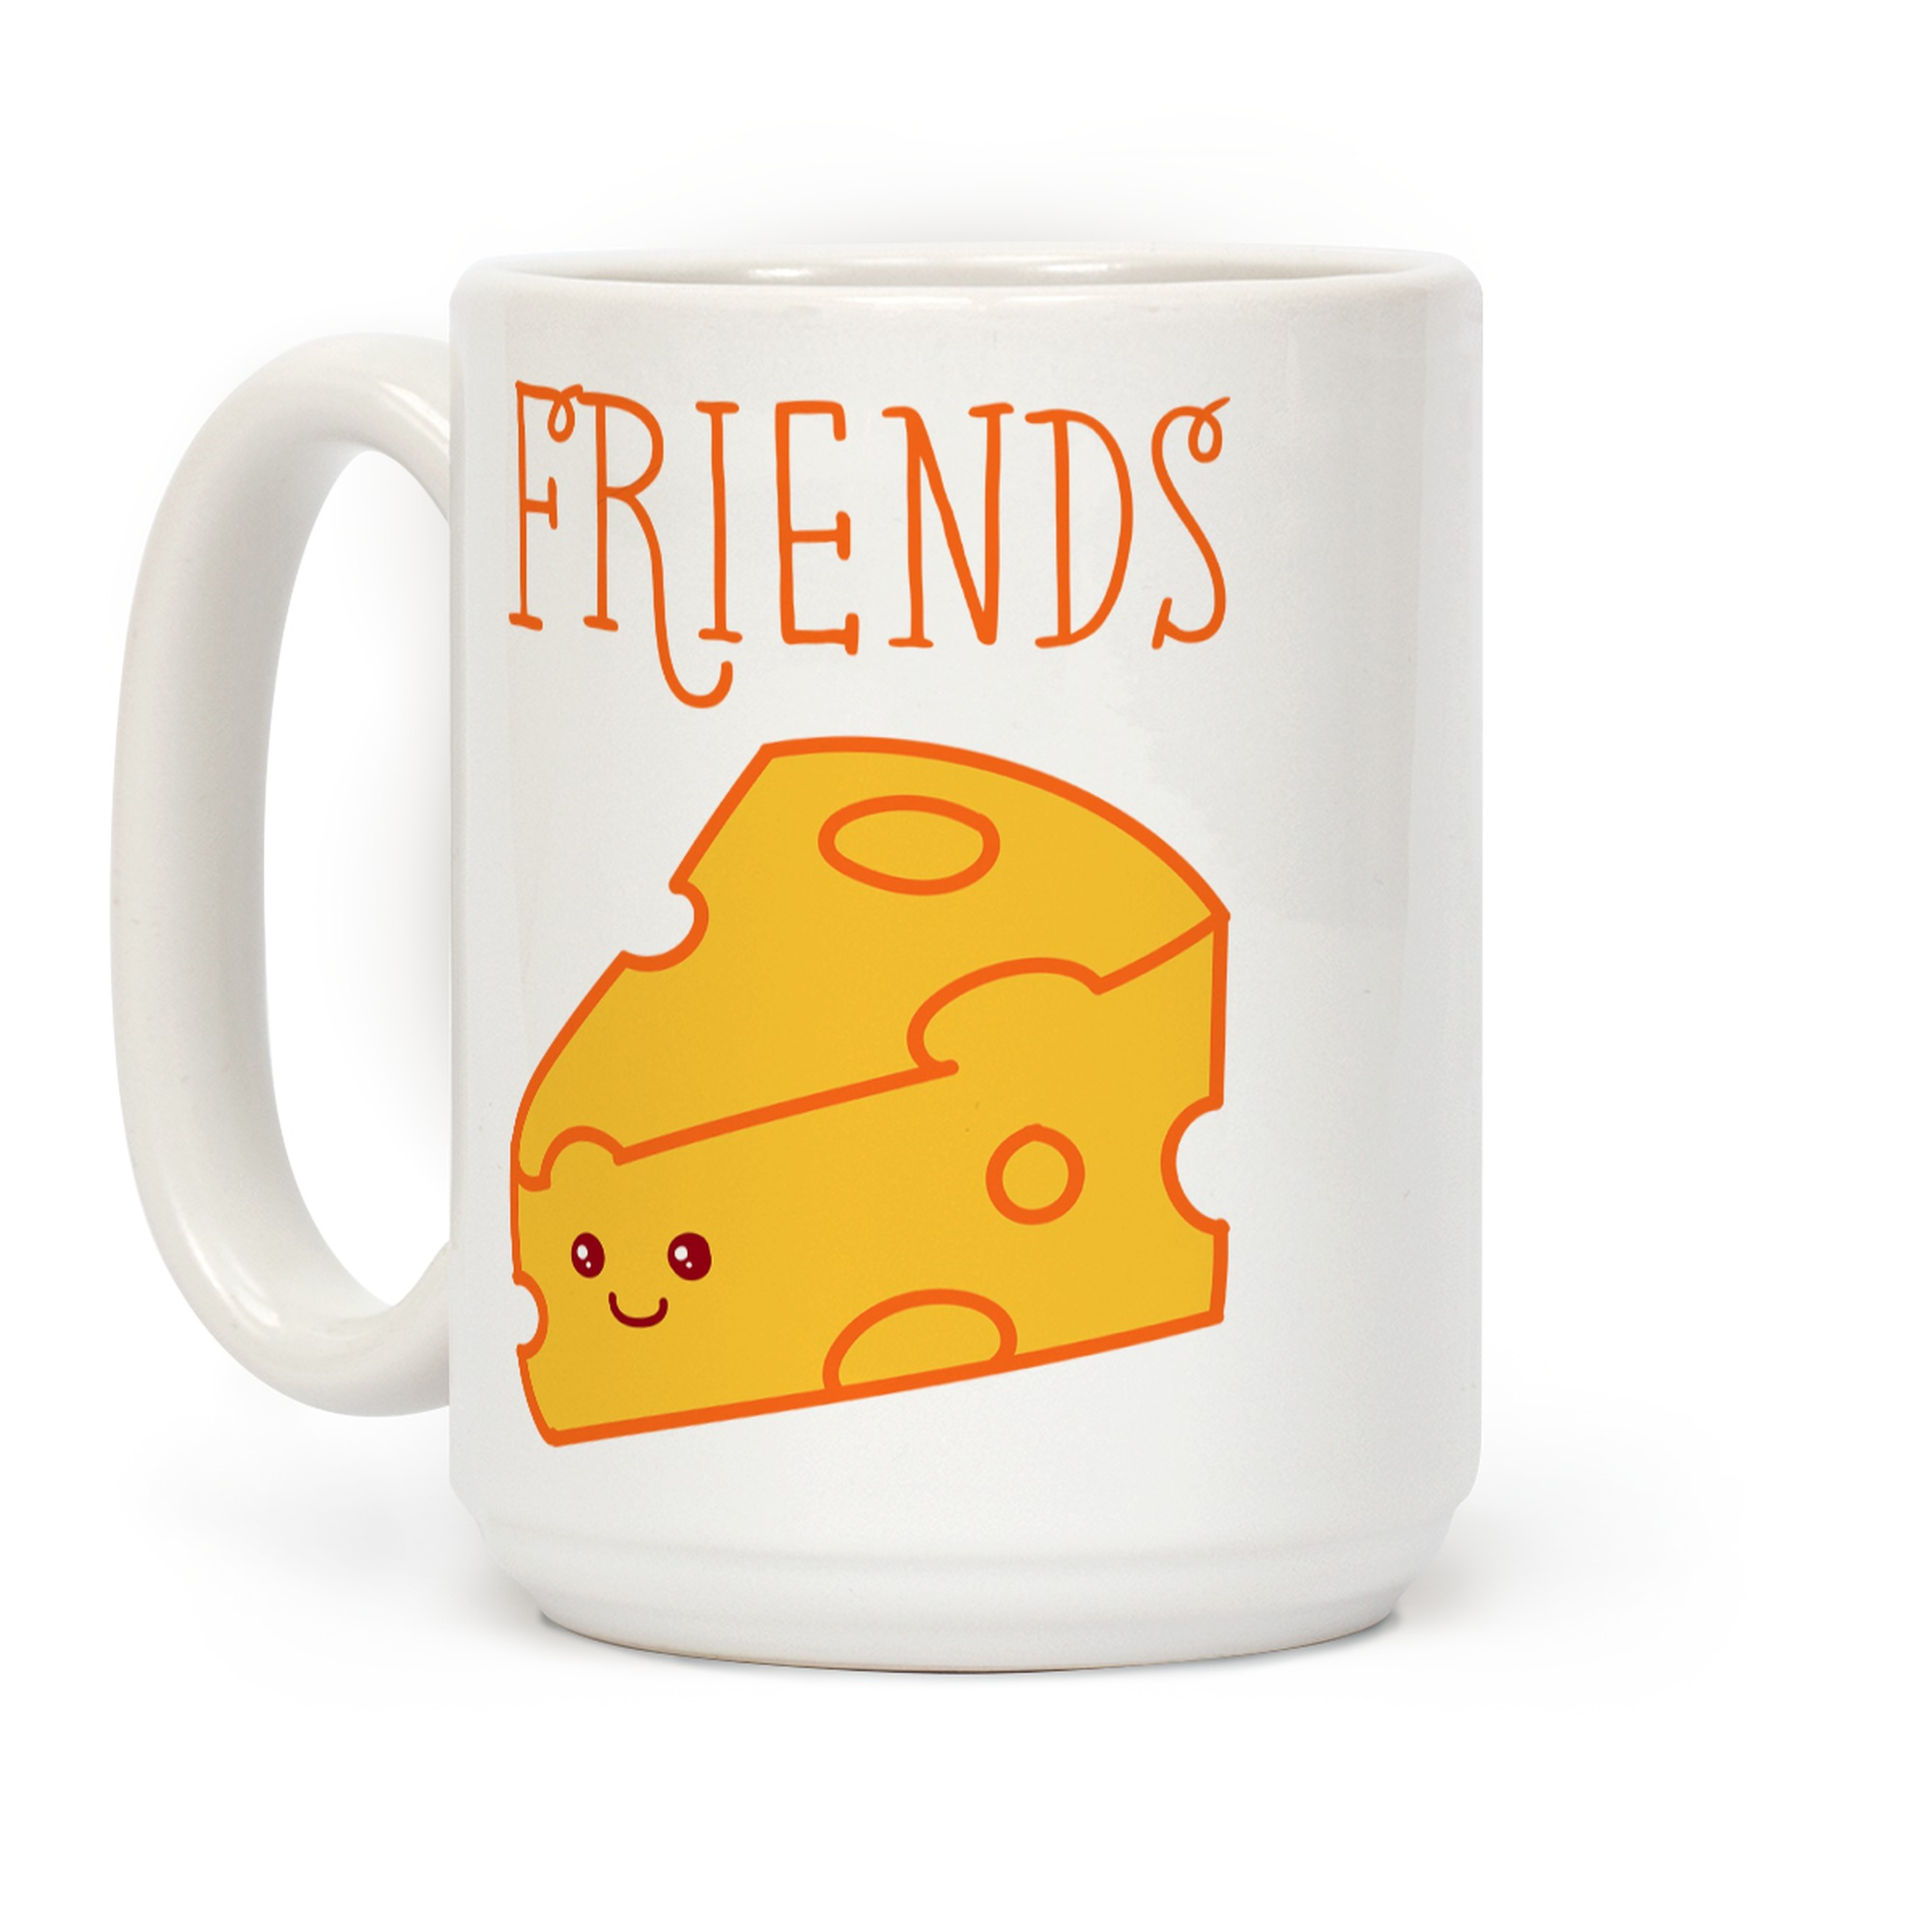 Best Friends Macaroni And Cheese 2 Coffee Mugs Lookhuman